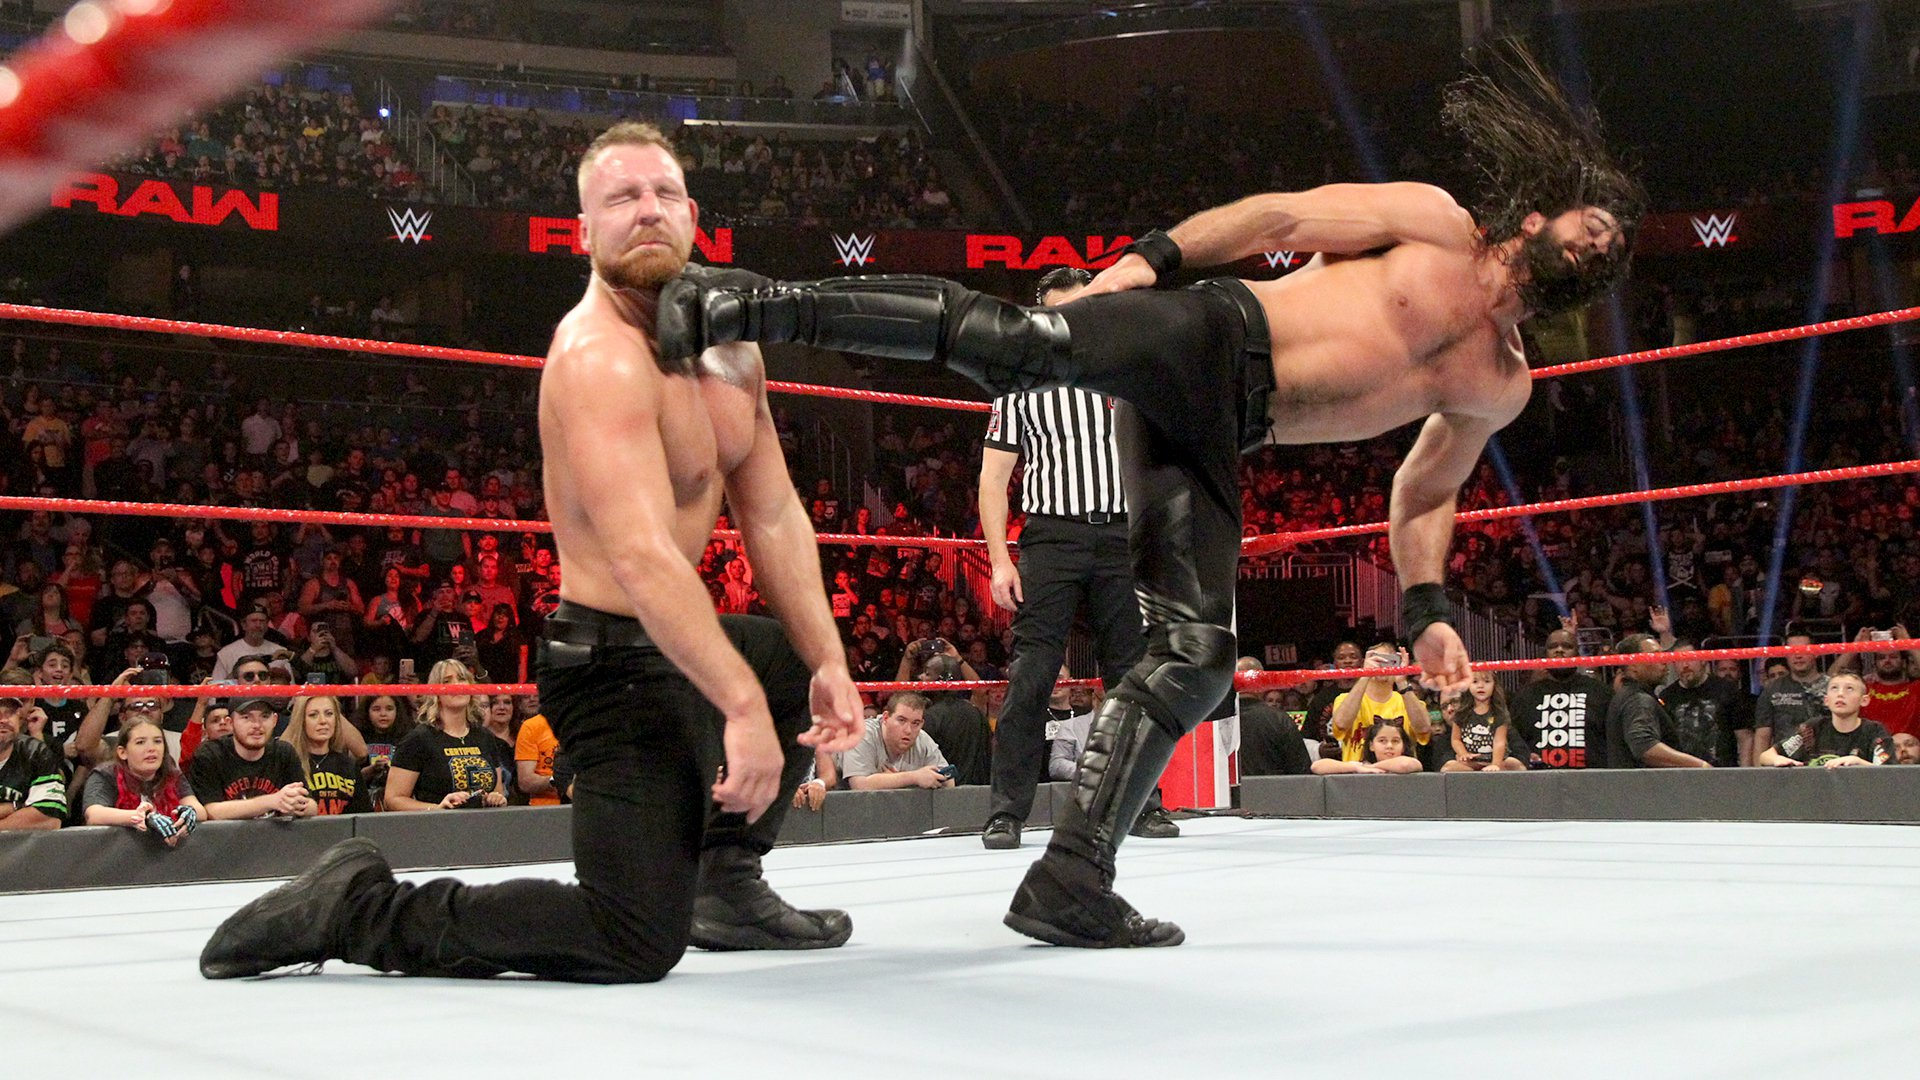 Rollins tattoos Ambrose with a kick...